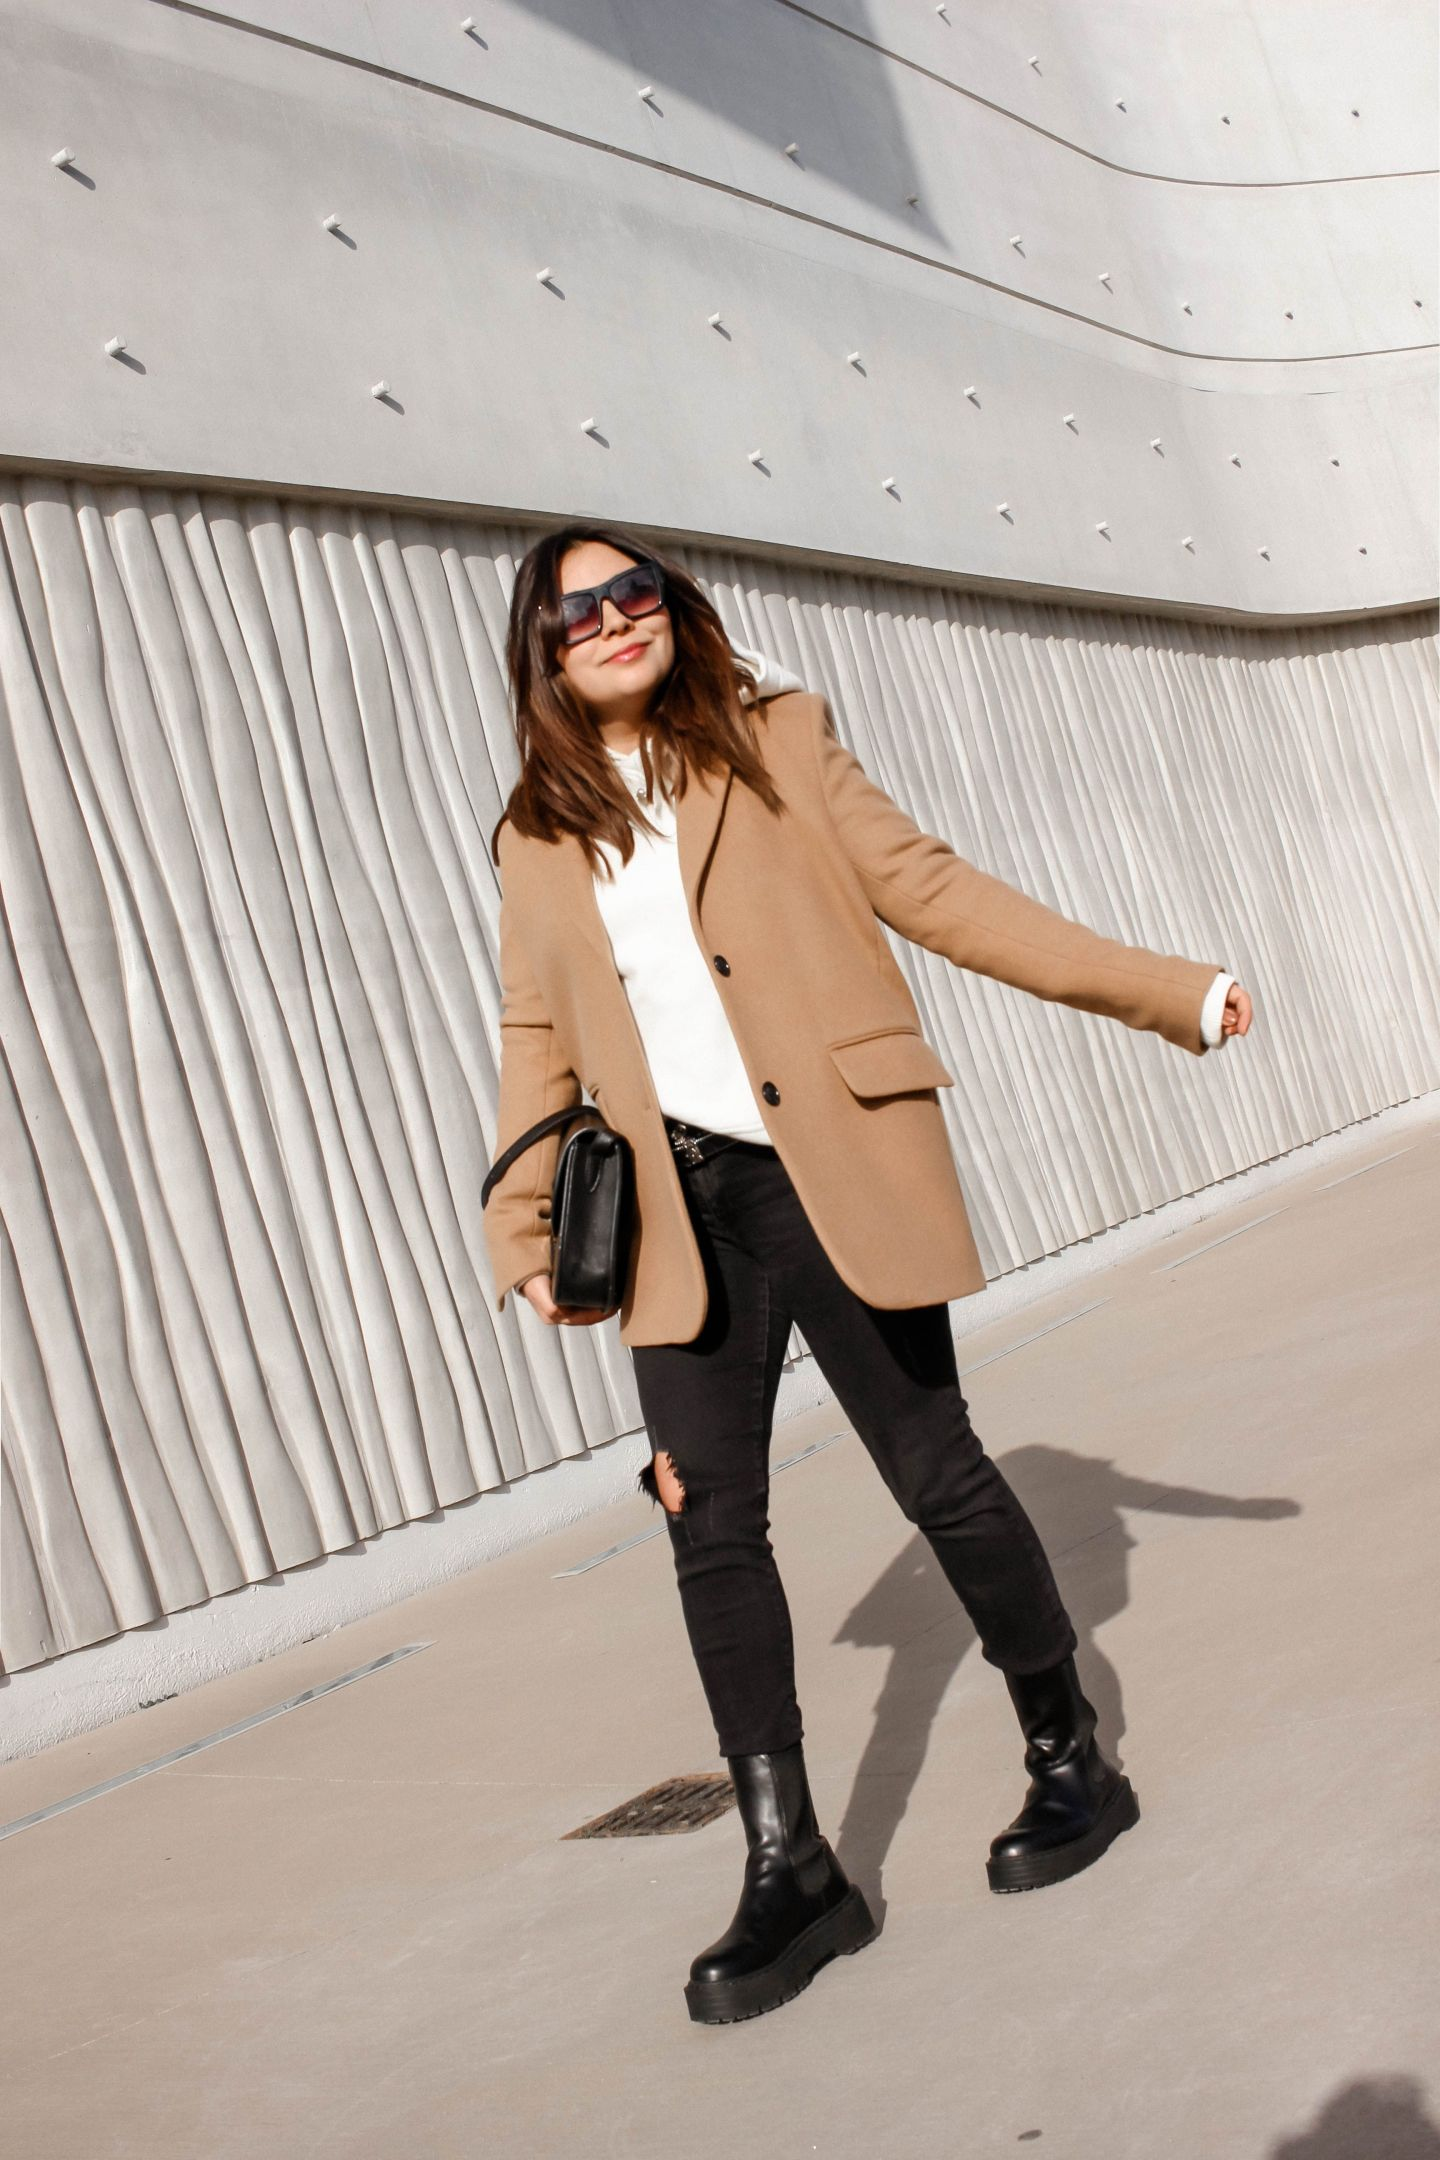 SWEAT OVERSIZE, BLAZER & BOTTINES INSPI BOTTEGA EN #NoLeather, the green ananas, blogueuse mode, french blogger, mode pinterest, hm, sweat hm, sac inspi céline, zara, lunettes zara